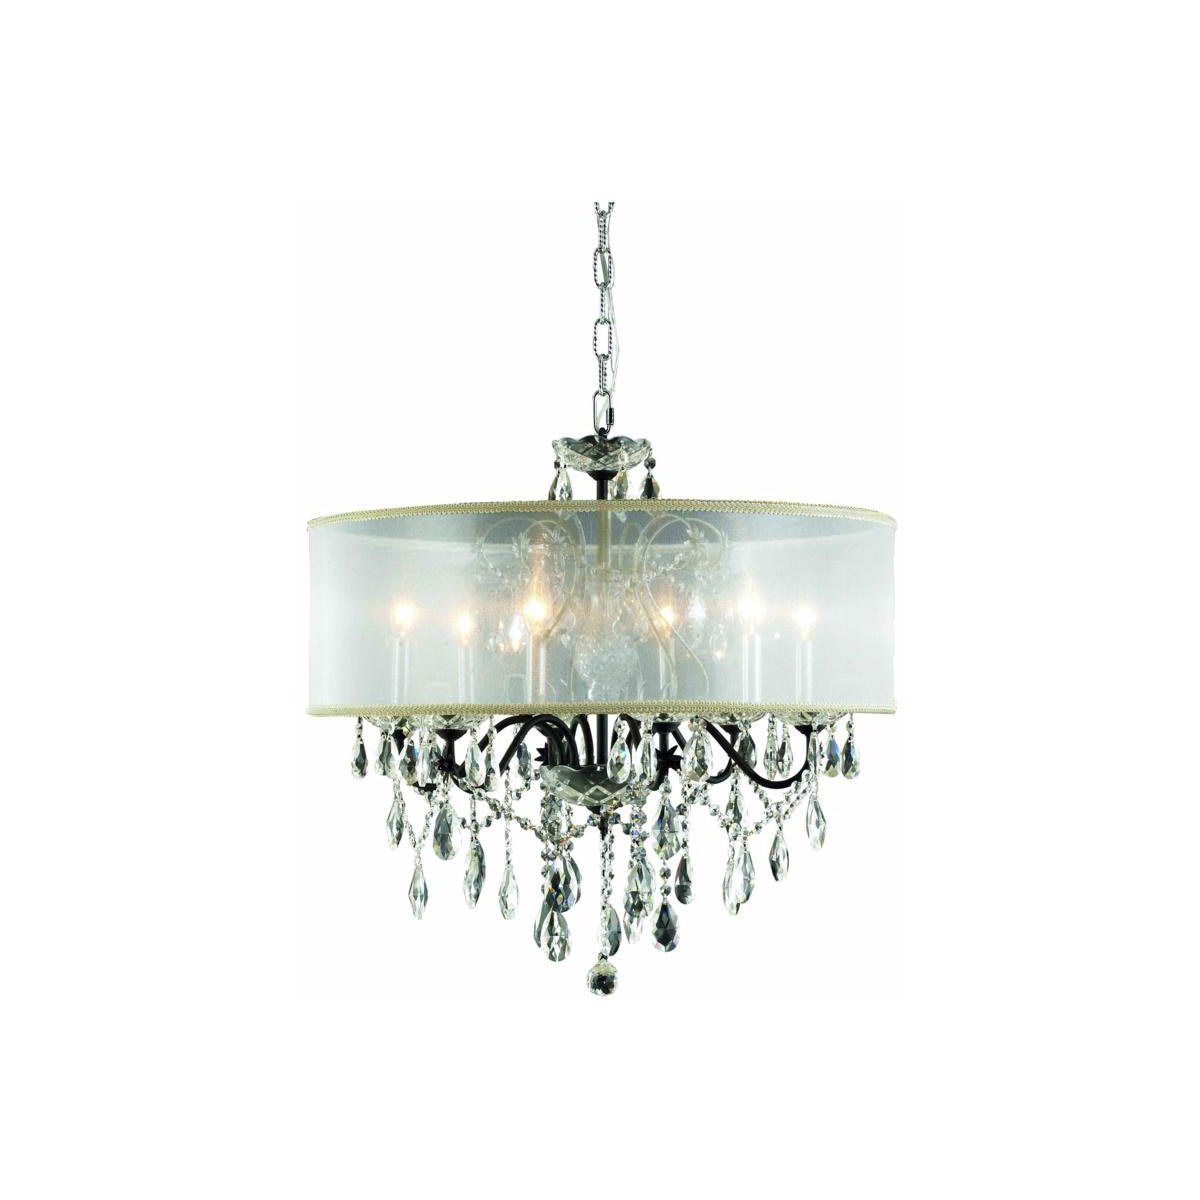 St. Francis 24 Crystal Chandelier With Silver Shade And 6 Lights - Dark Bronze Finish And Royal Cut Crystal Chandelier